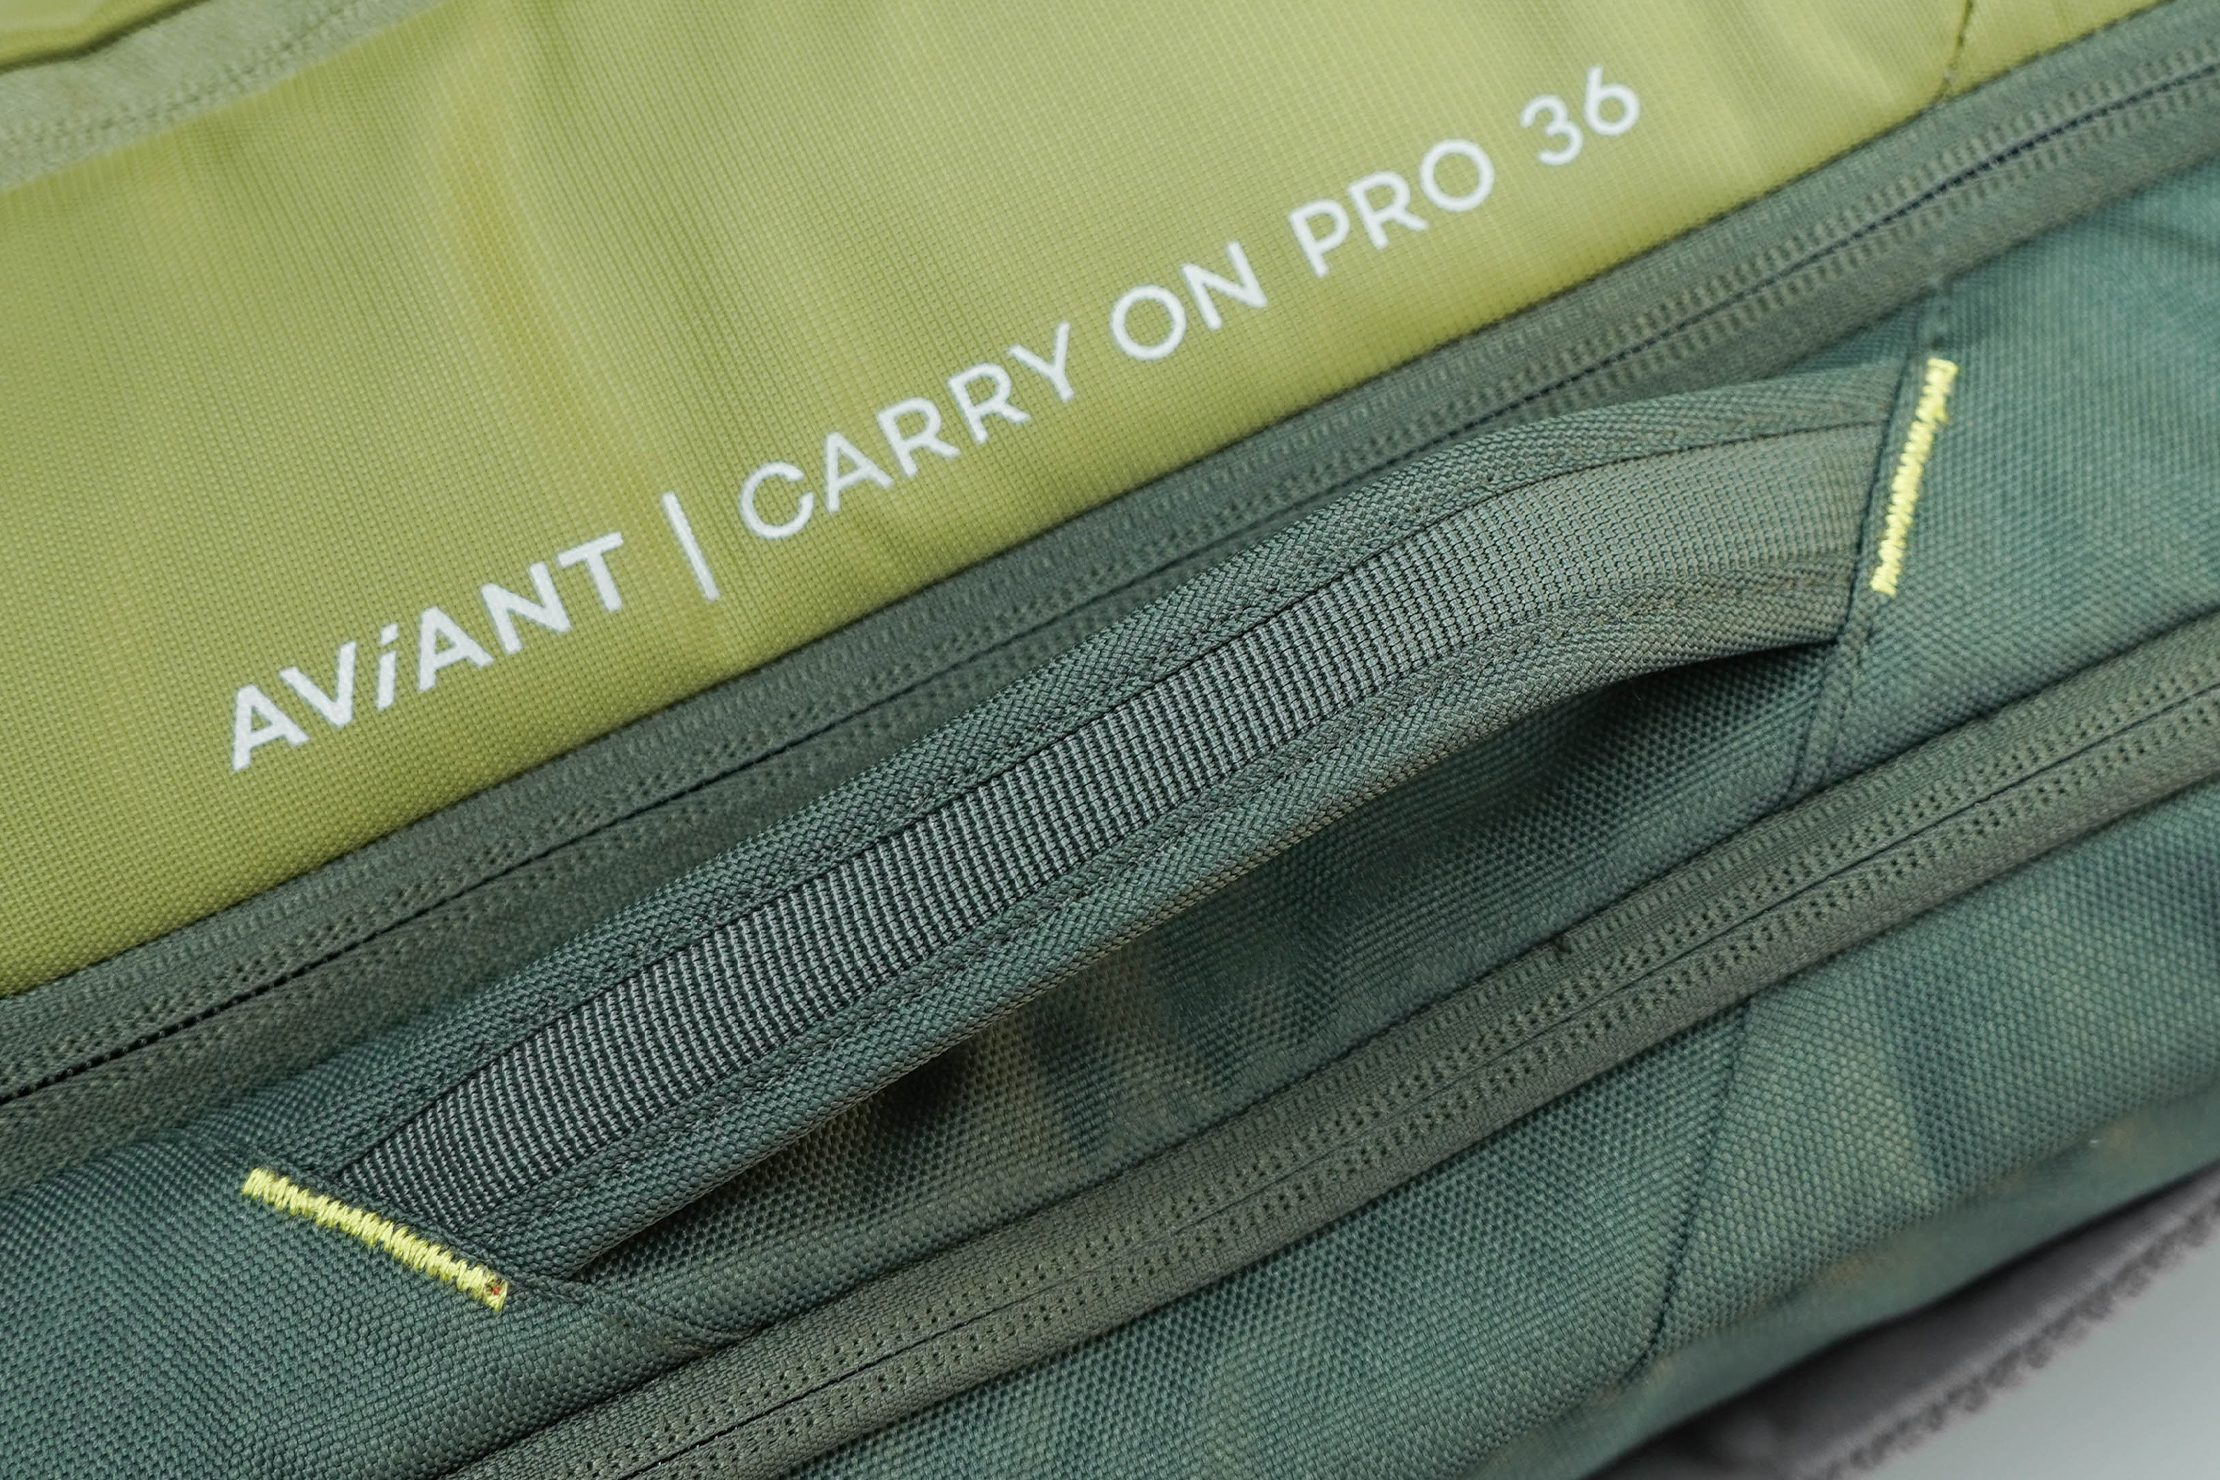 Deuter AViANT Carry On Pro 36 Side Handle